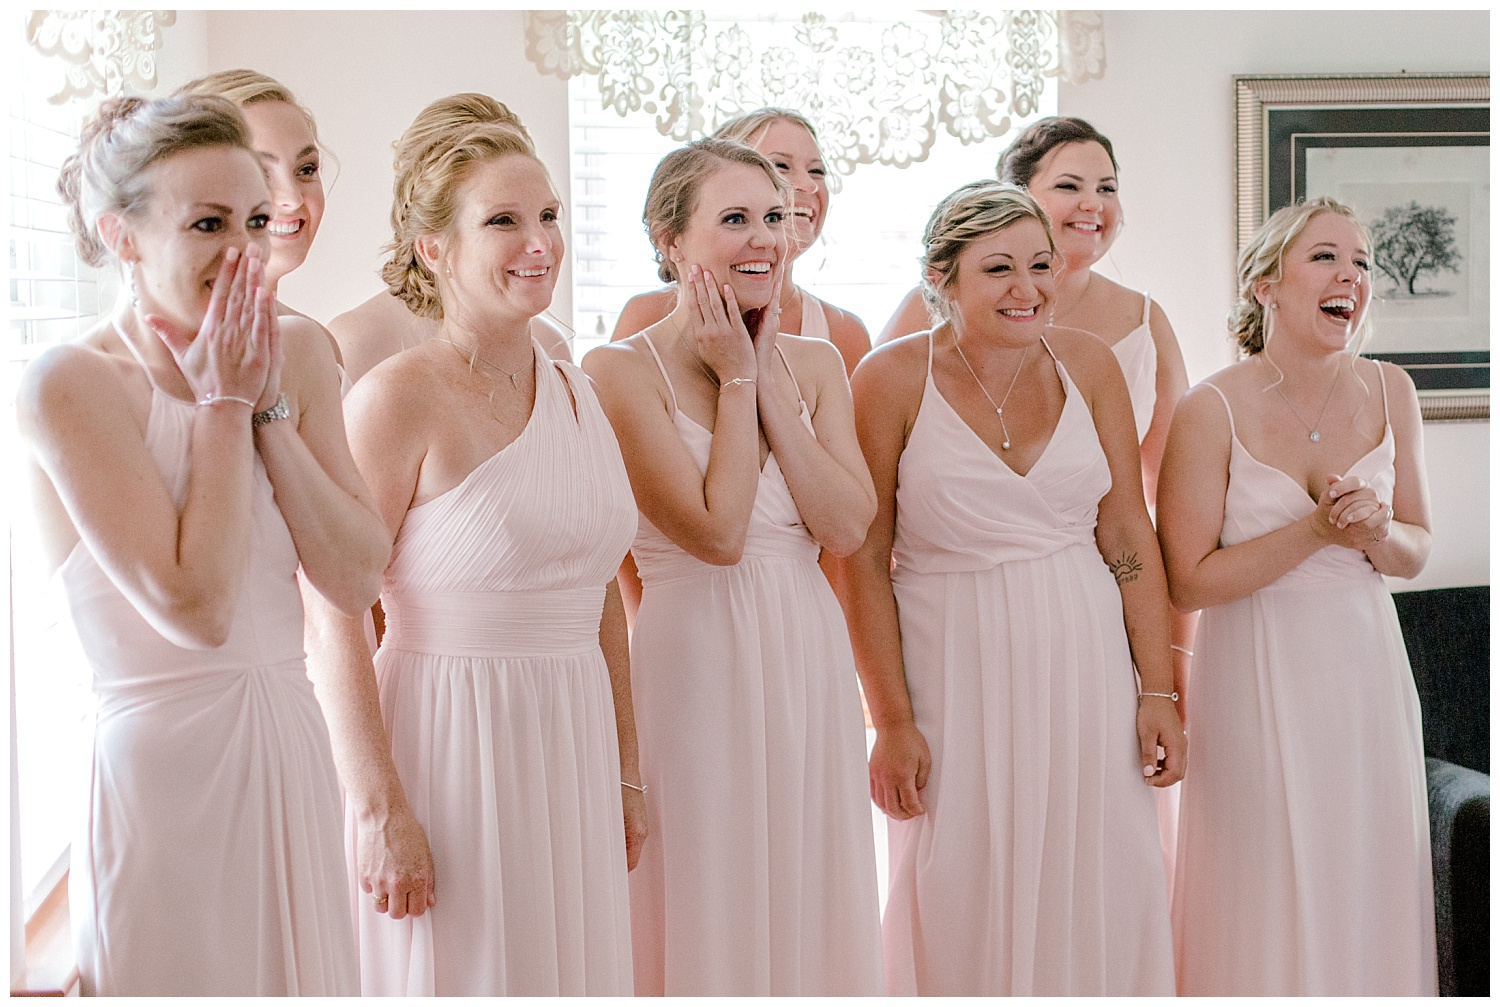 Navy and Blush pink inspired summertime whitewoods wedding in Northeastern Pennsylvania NEPA wapwallopen wedding venue by  PA based wedding and lifestyle photographer Lytle photography_0013.jpg